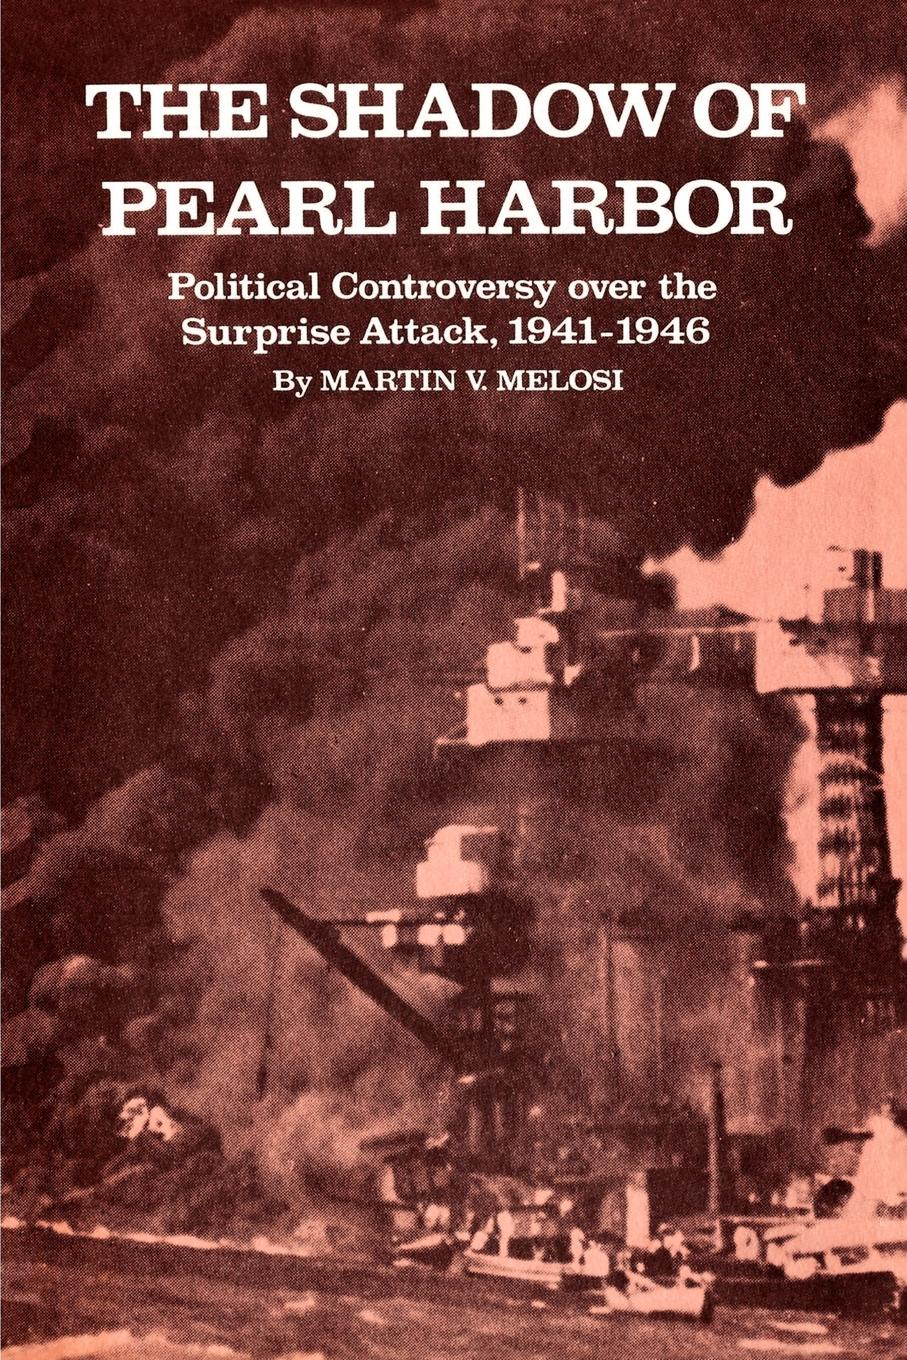 цены Martin V. Melosi The Shadow of Pearl Harbor. Political Controversy Over the Surprise Attack, 1941-1946